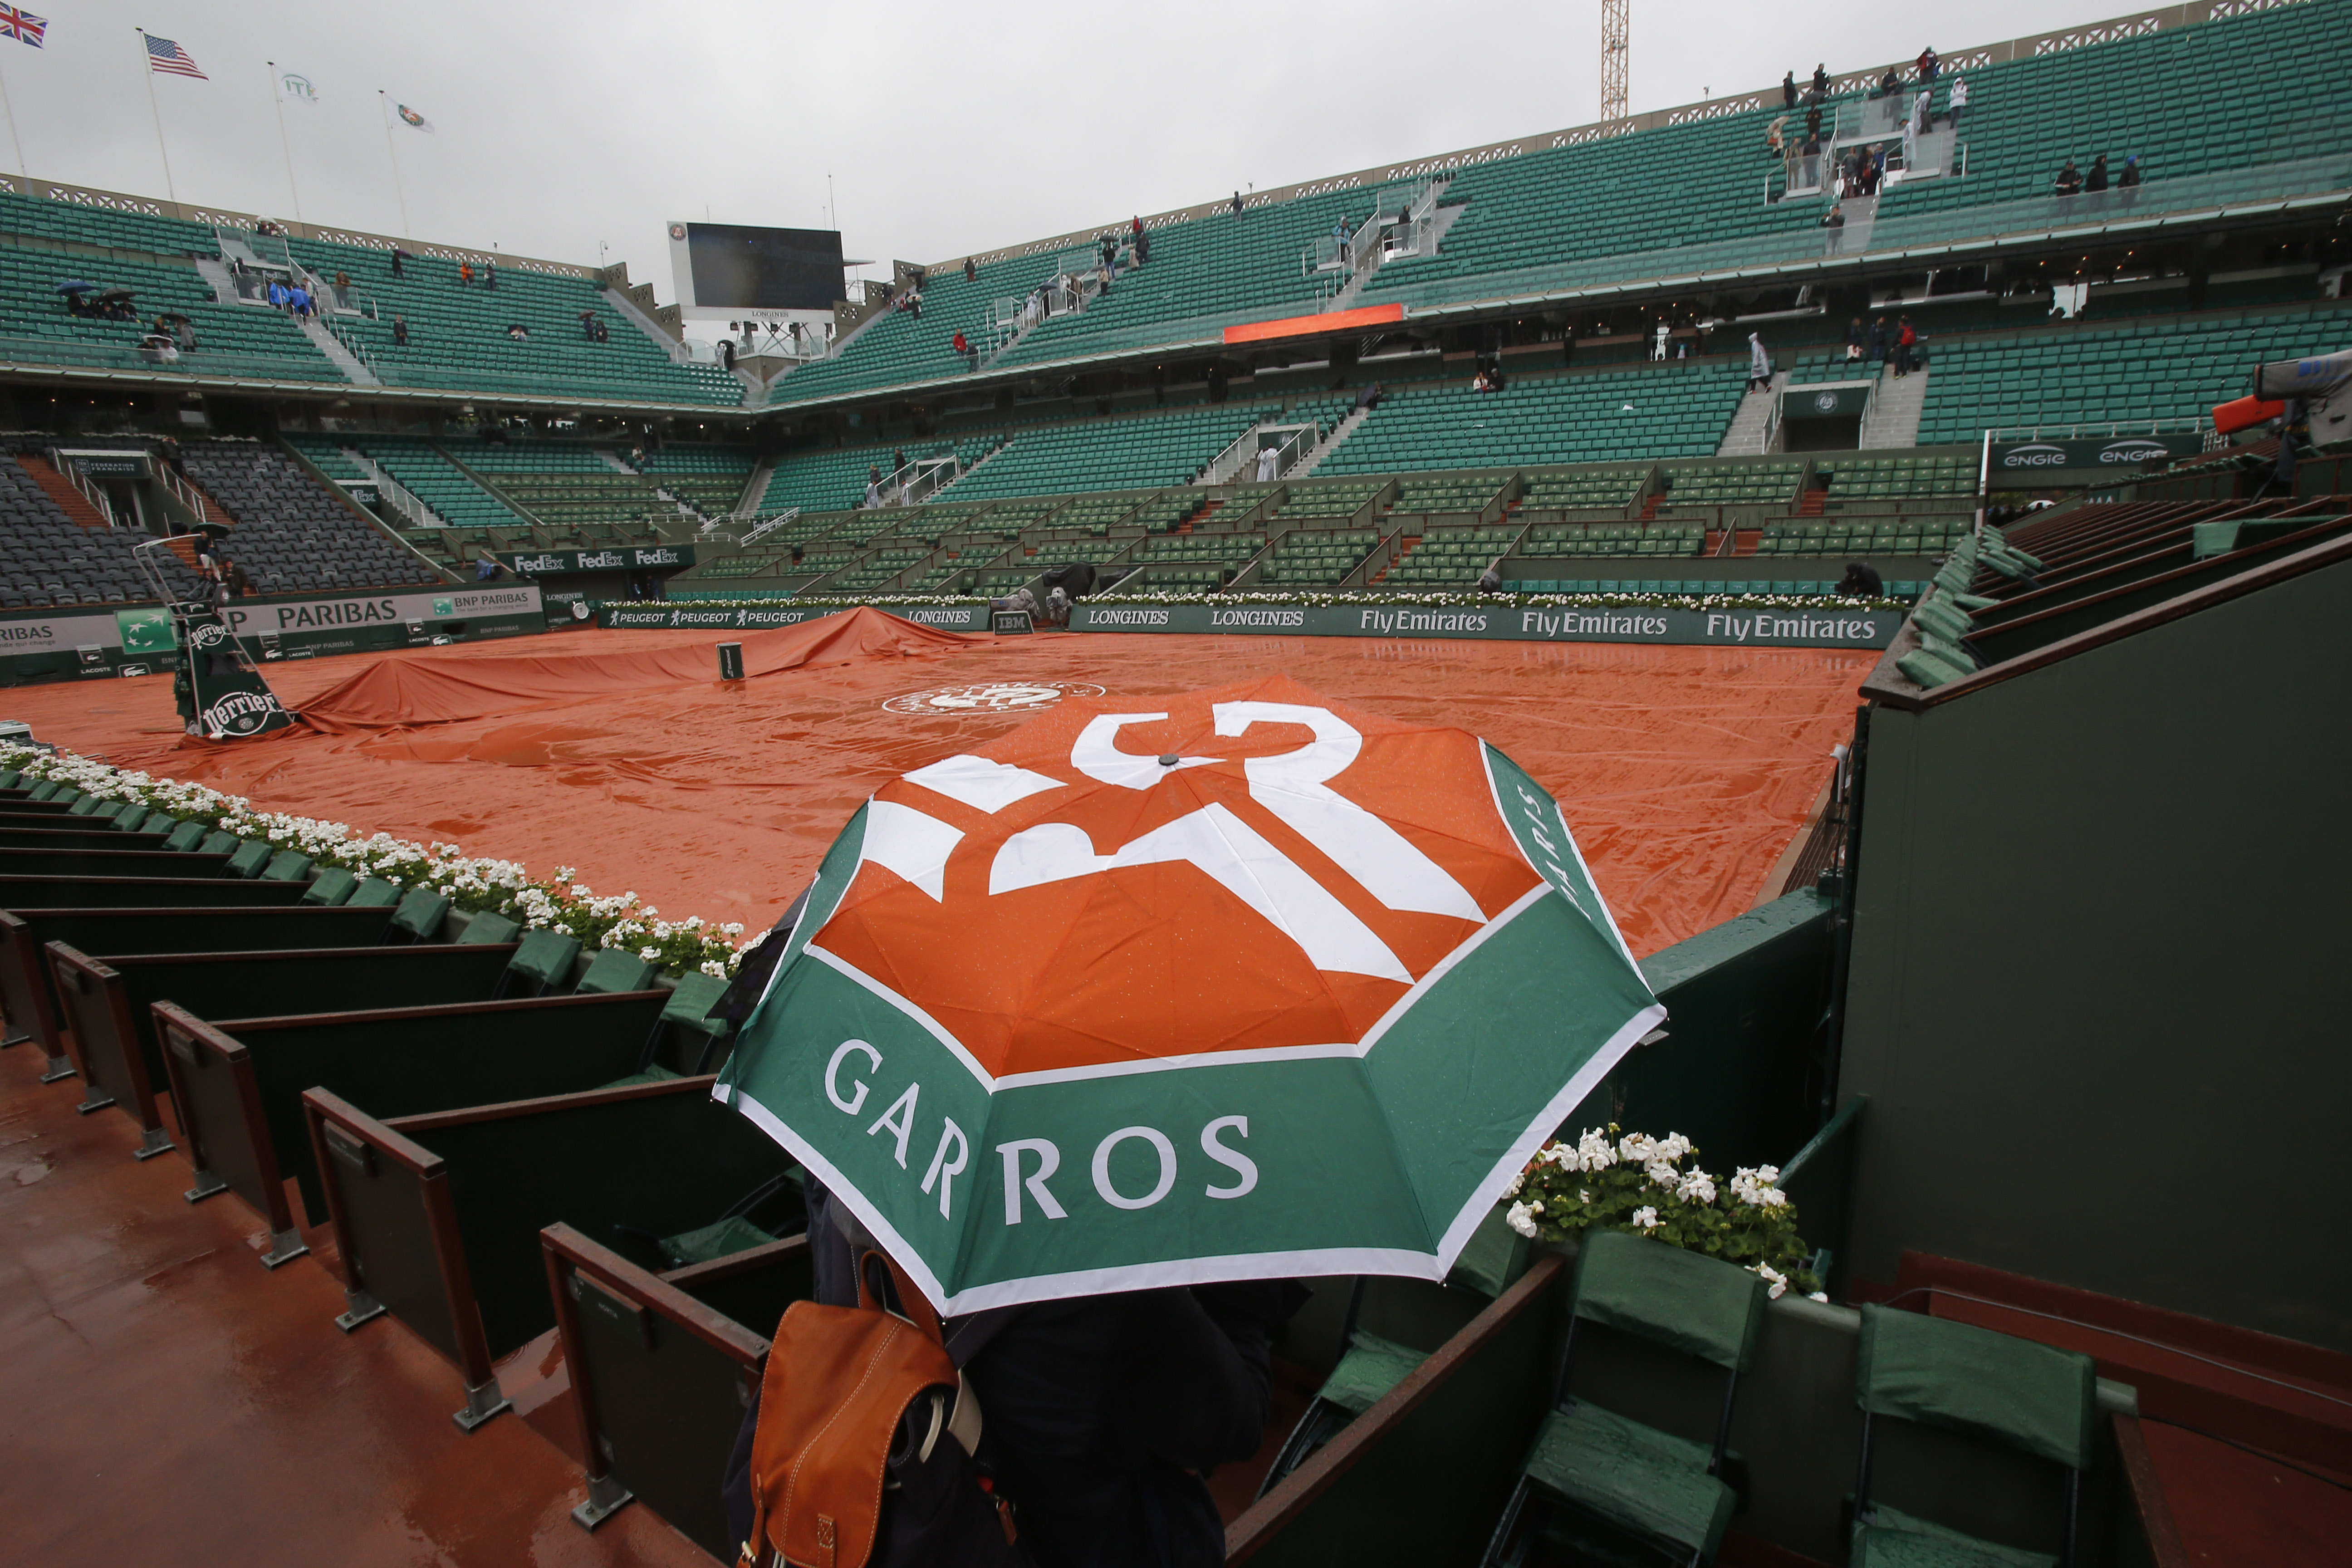 A few spectators wander around on center court of the French Open tennis tournament at the Roland Garros stadium in Paris, France, Monday, May 30, 2016. French Open organizers have announced the cancellation of all matches Monday at Roland Garros because